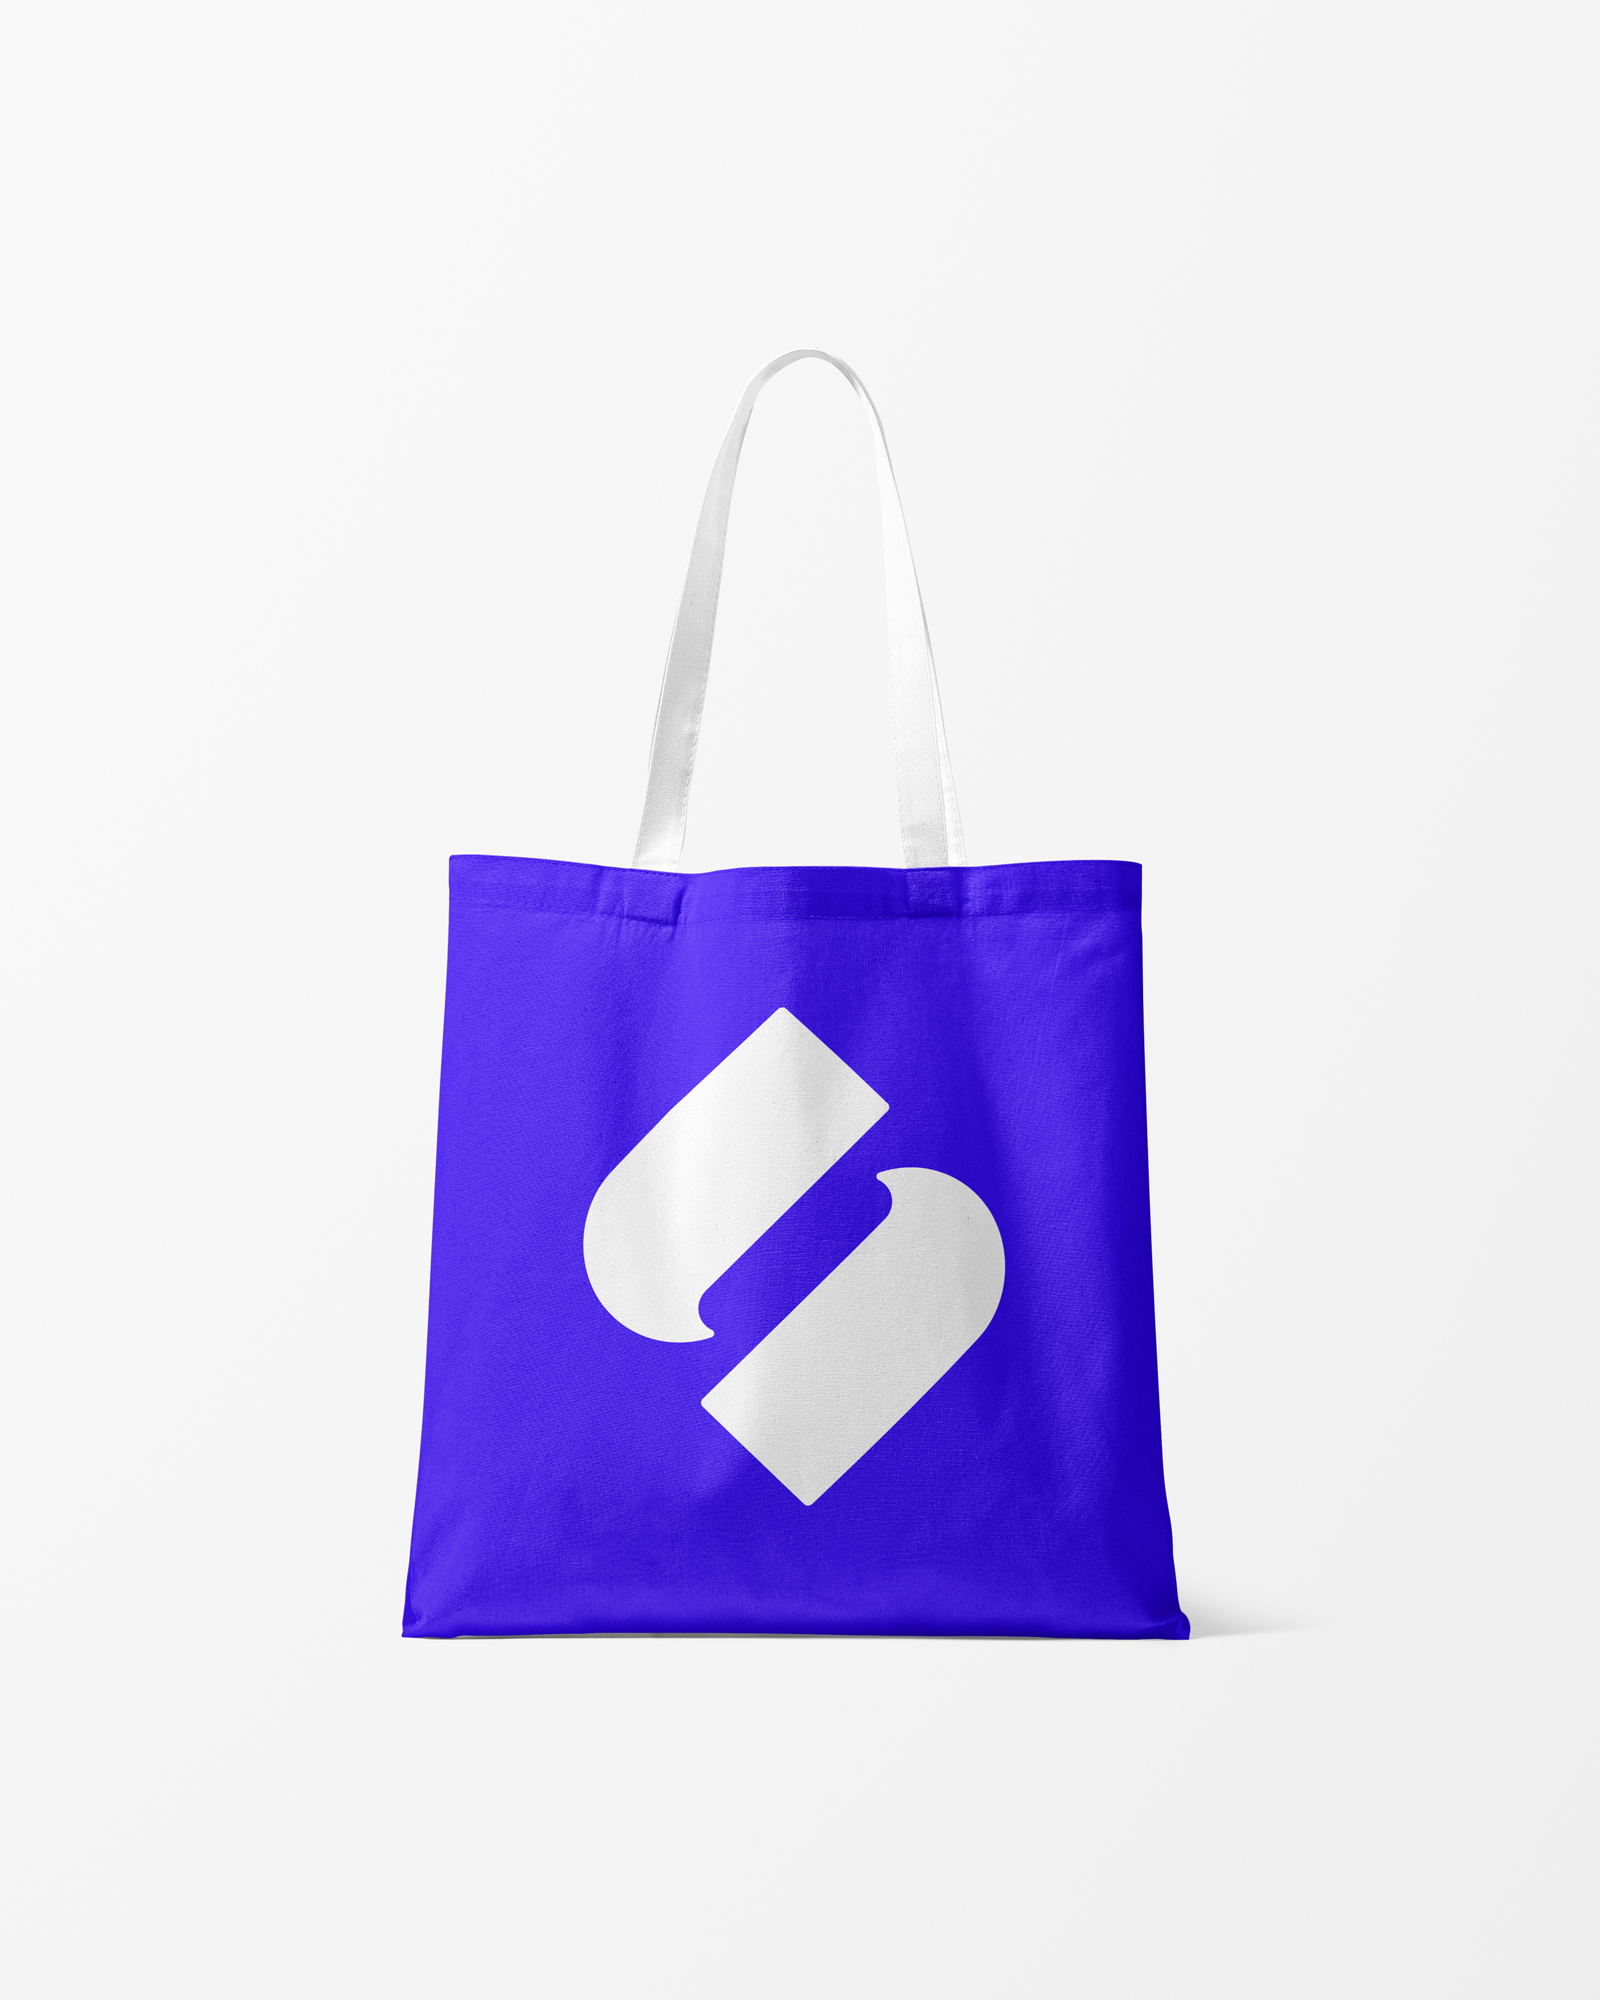 Slace branded tote bag in blue with white logo and handles